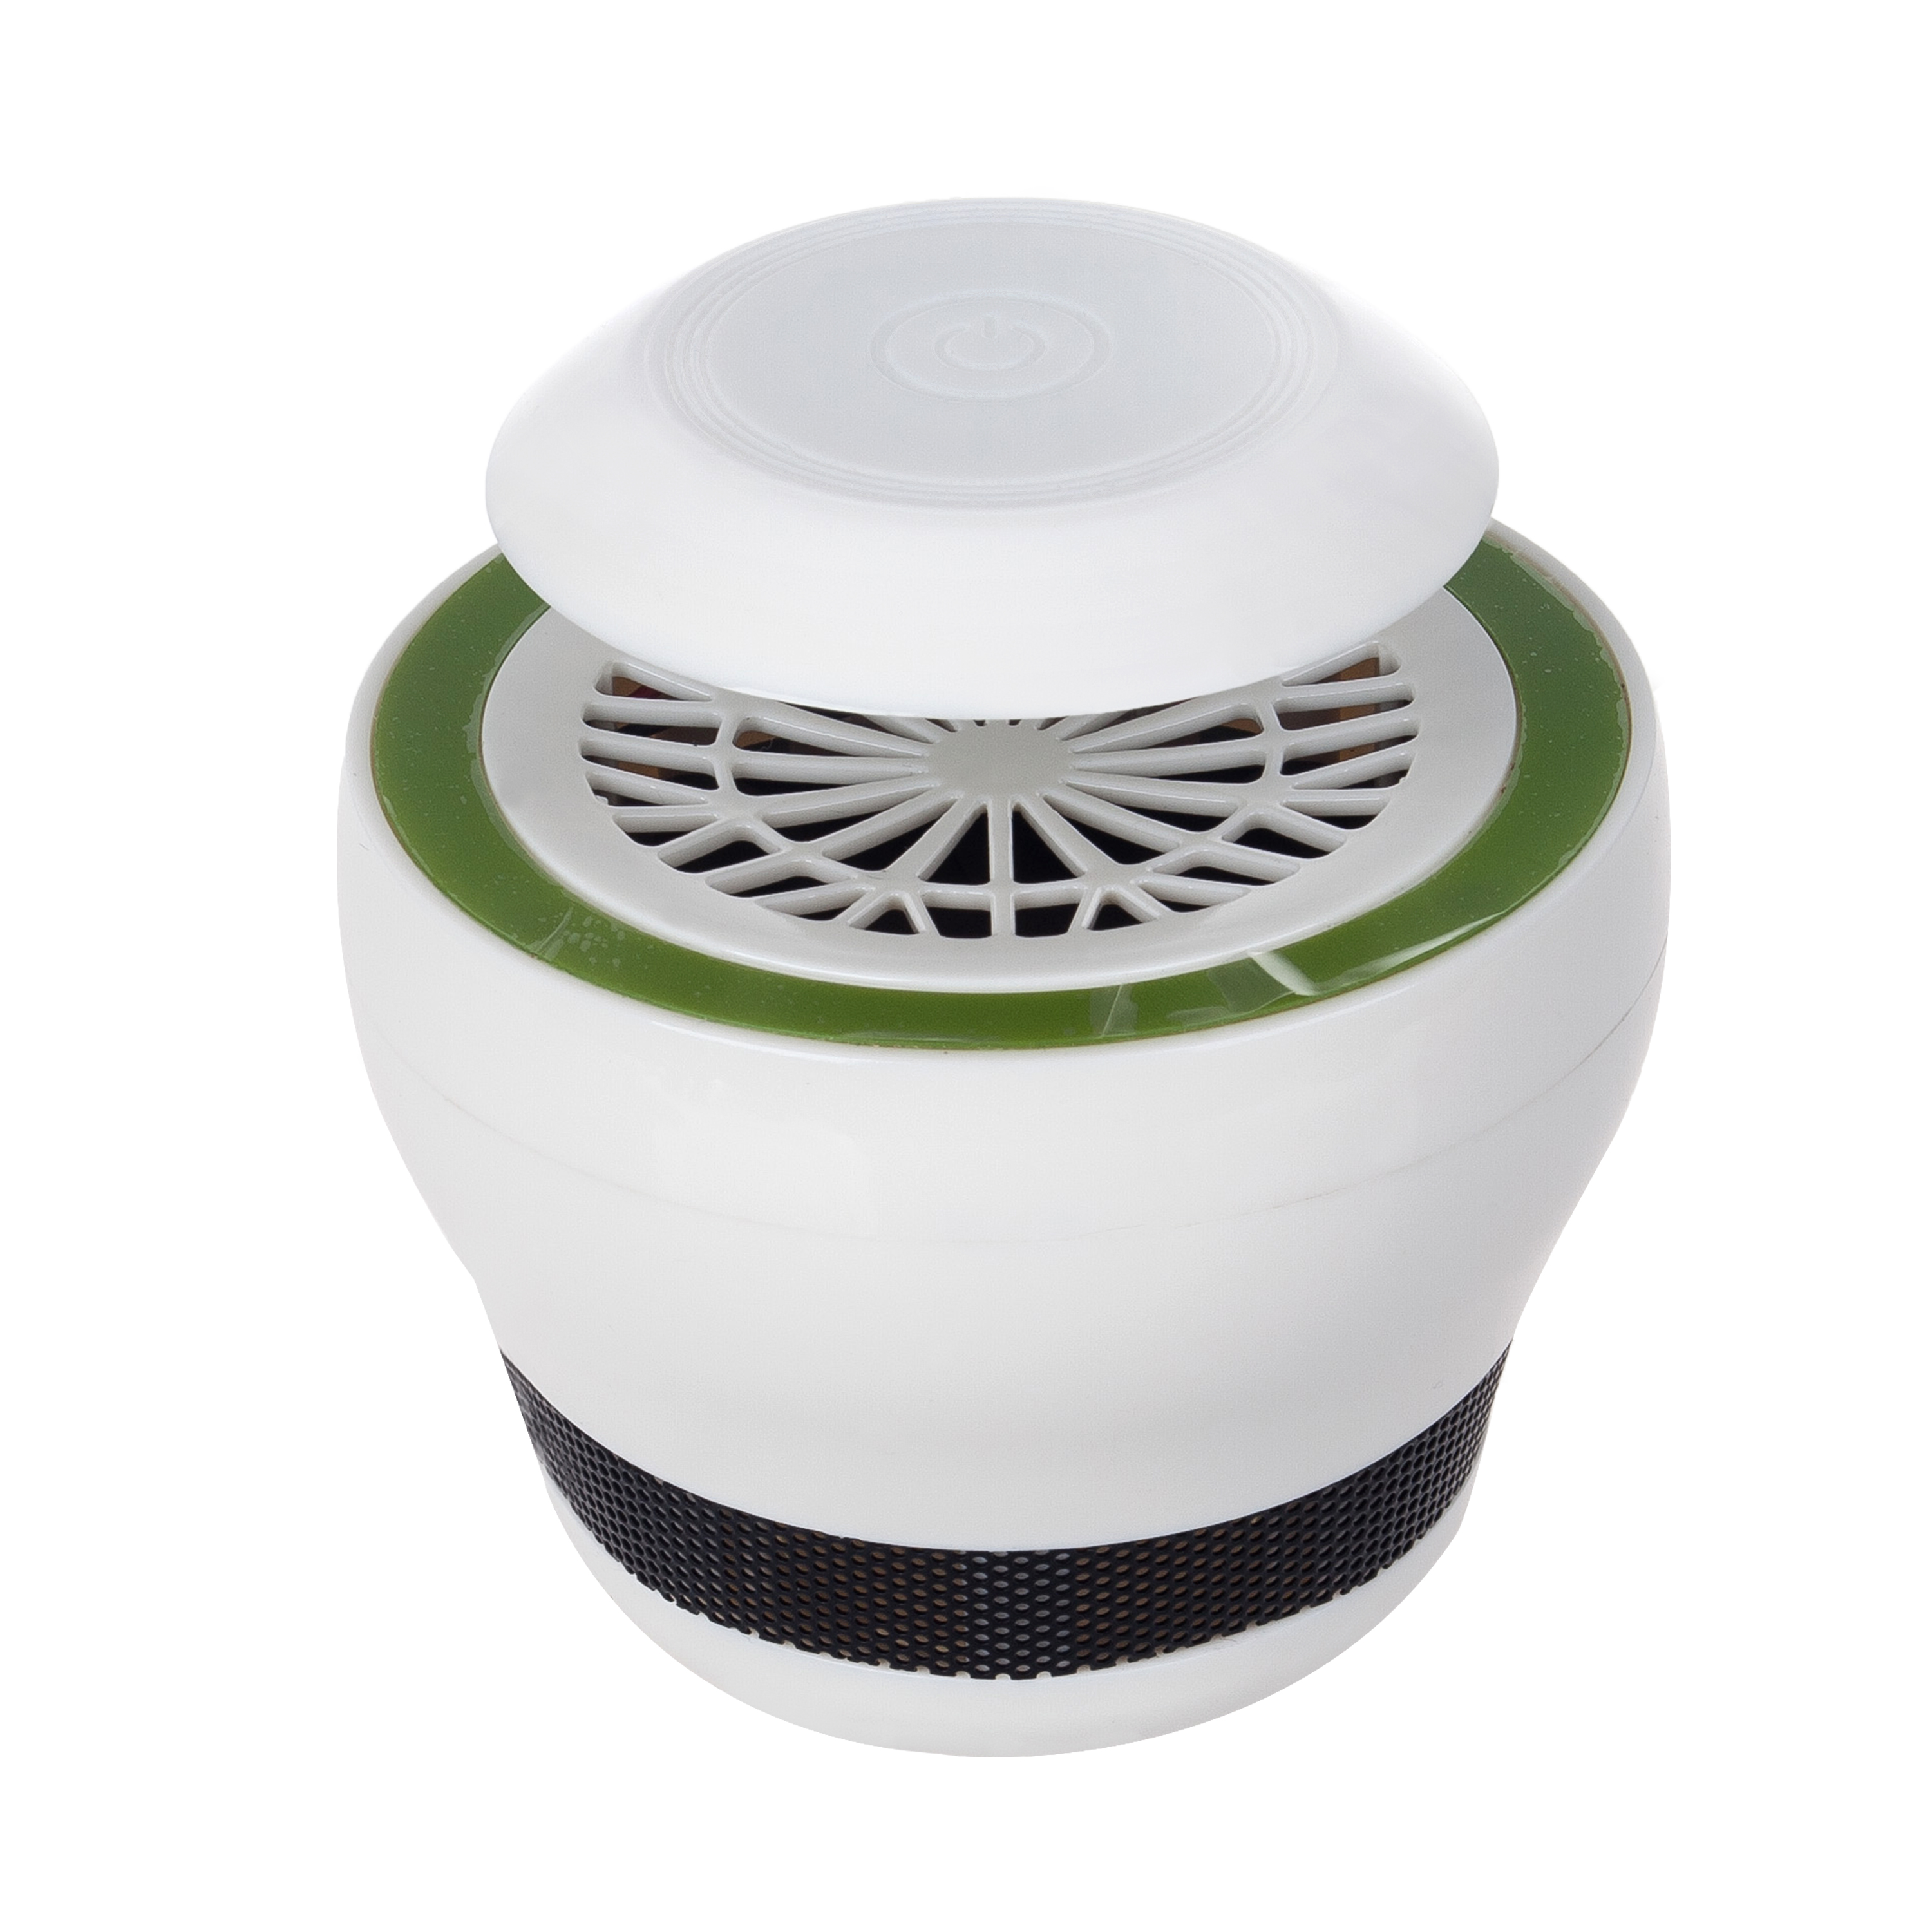 2019 new in-car smart air purifier